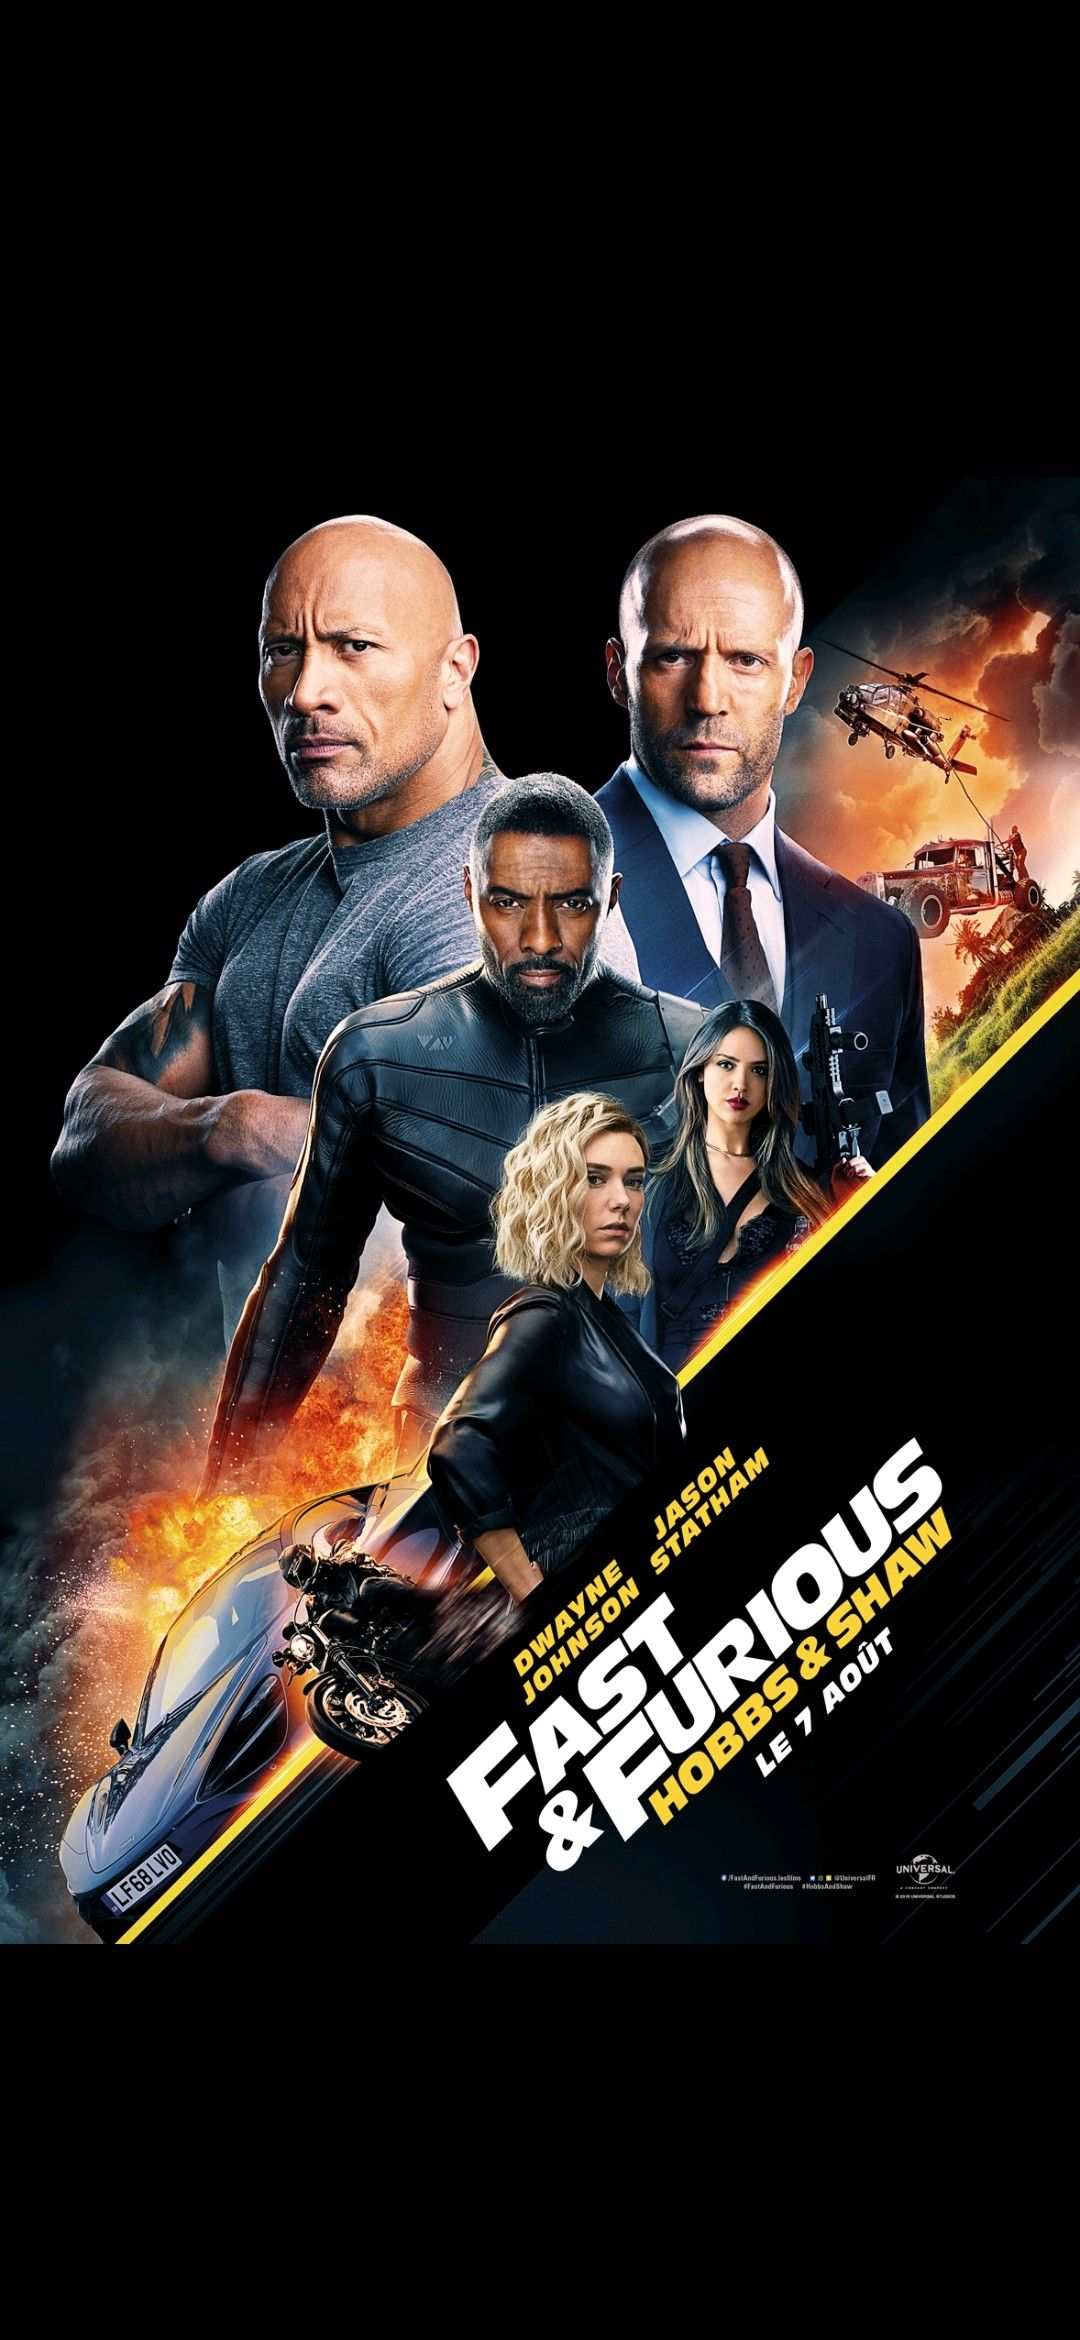 Hobs And Shaw Fast And Furious Full Movies Online Free Free Movies Online